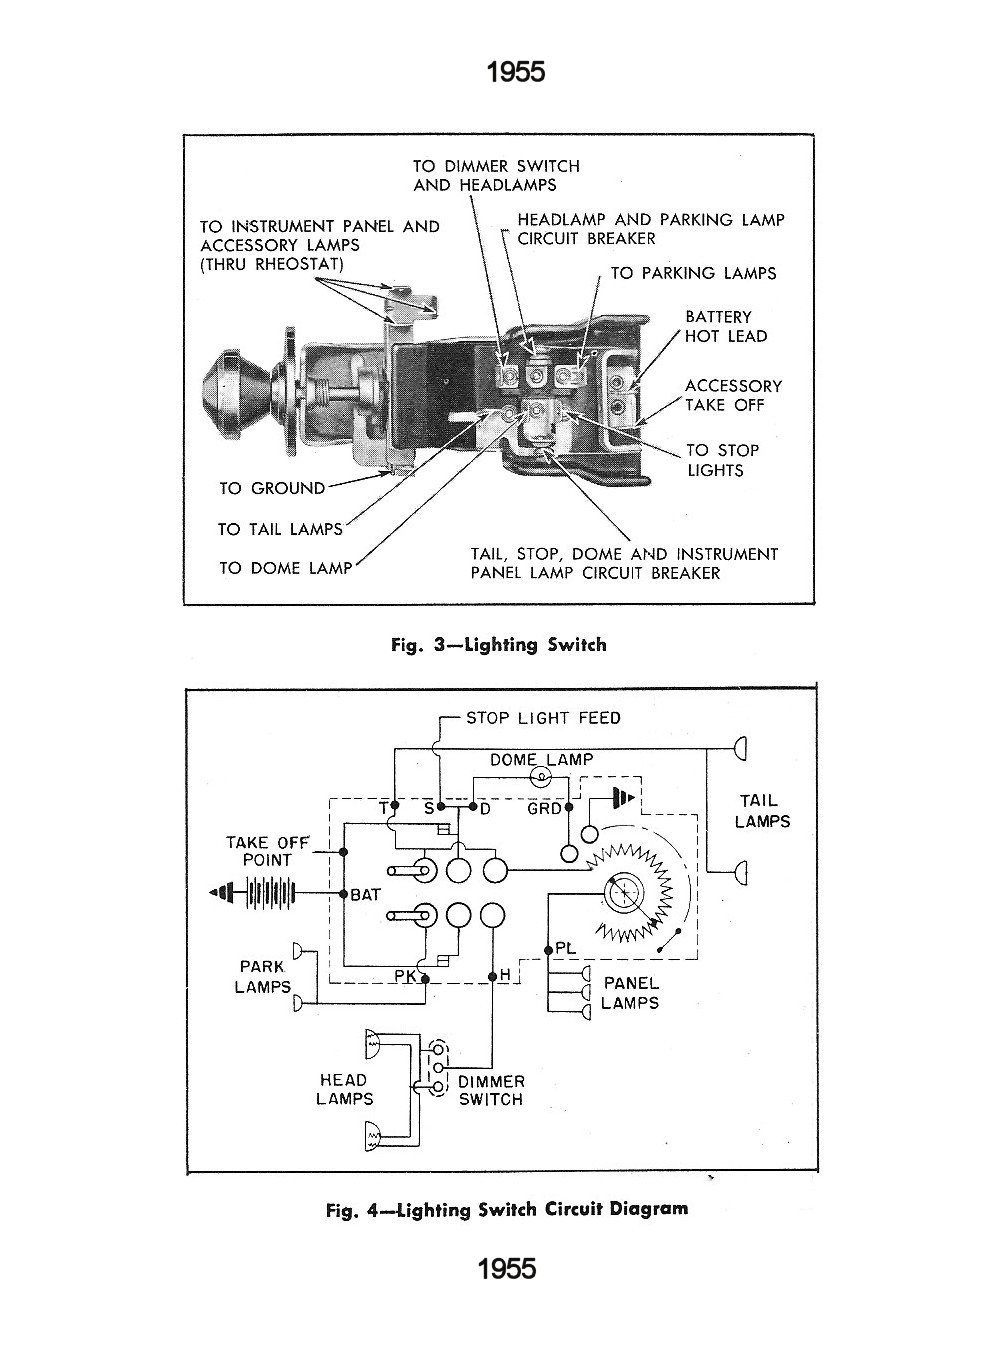 55csm1204a chevy wiring diagrams 66 Chevy Headlight Switch Wiring Diagram at nearapp.co